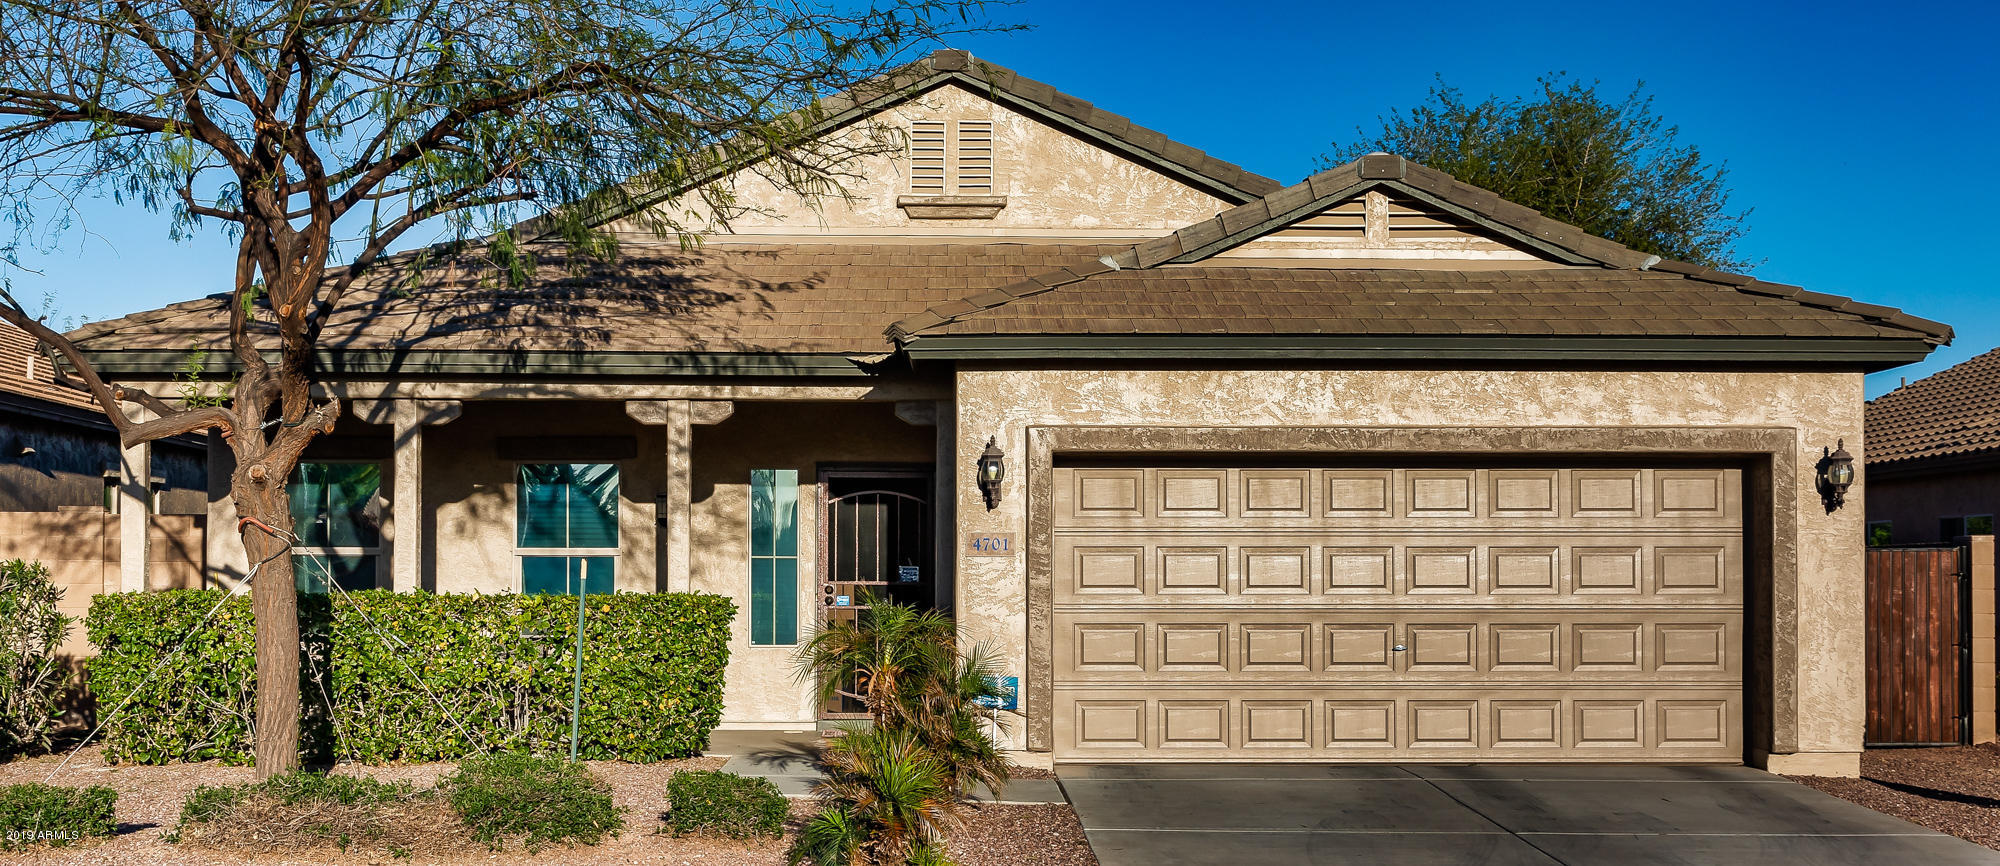 Photo of 4701 S DANTE --, Mesa, AZ 85212